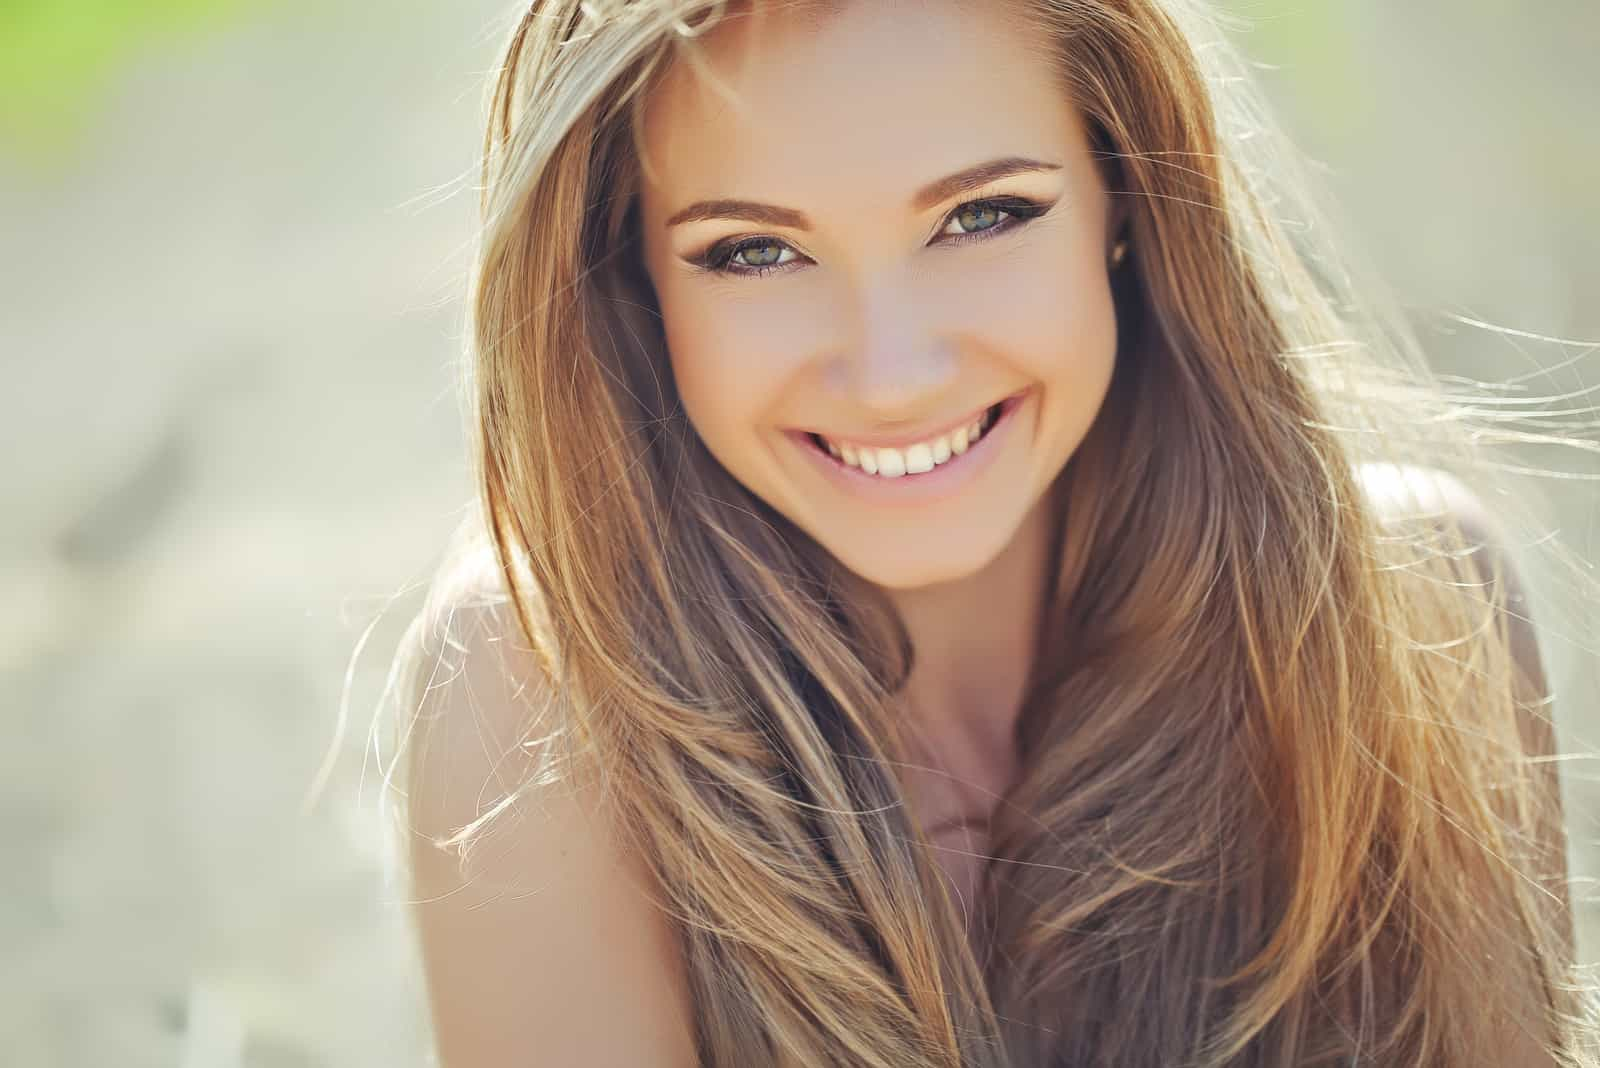 a beautiful smiling woman with long brown hair